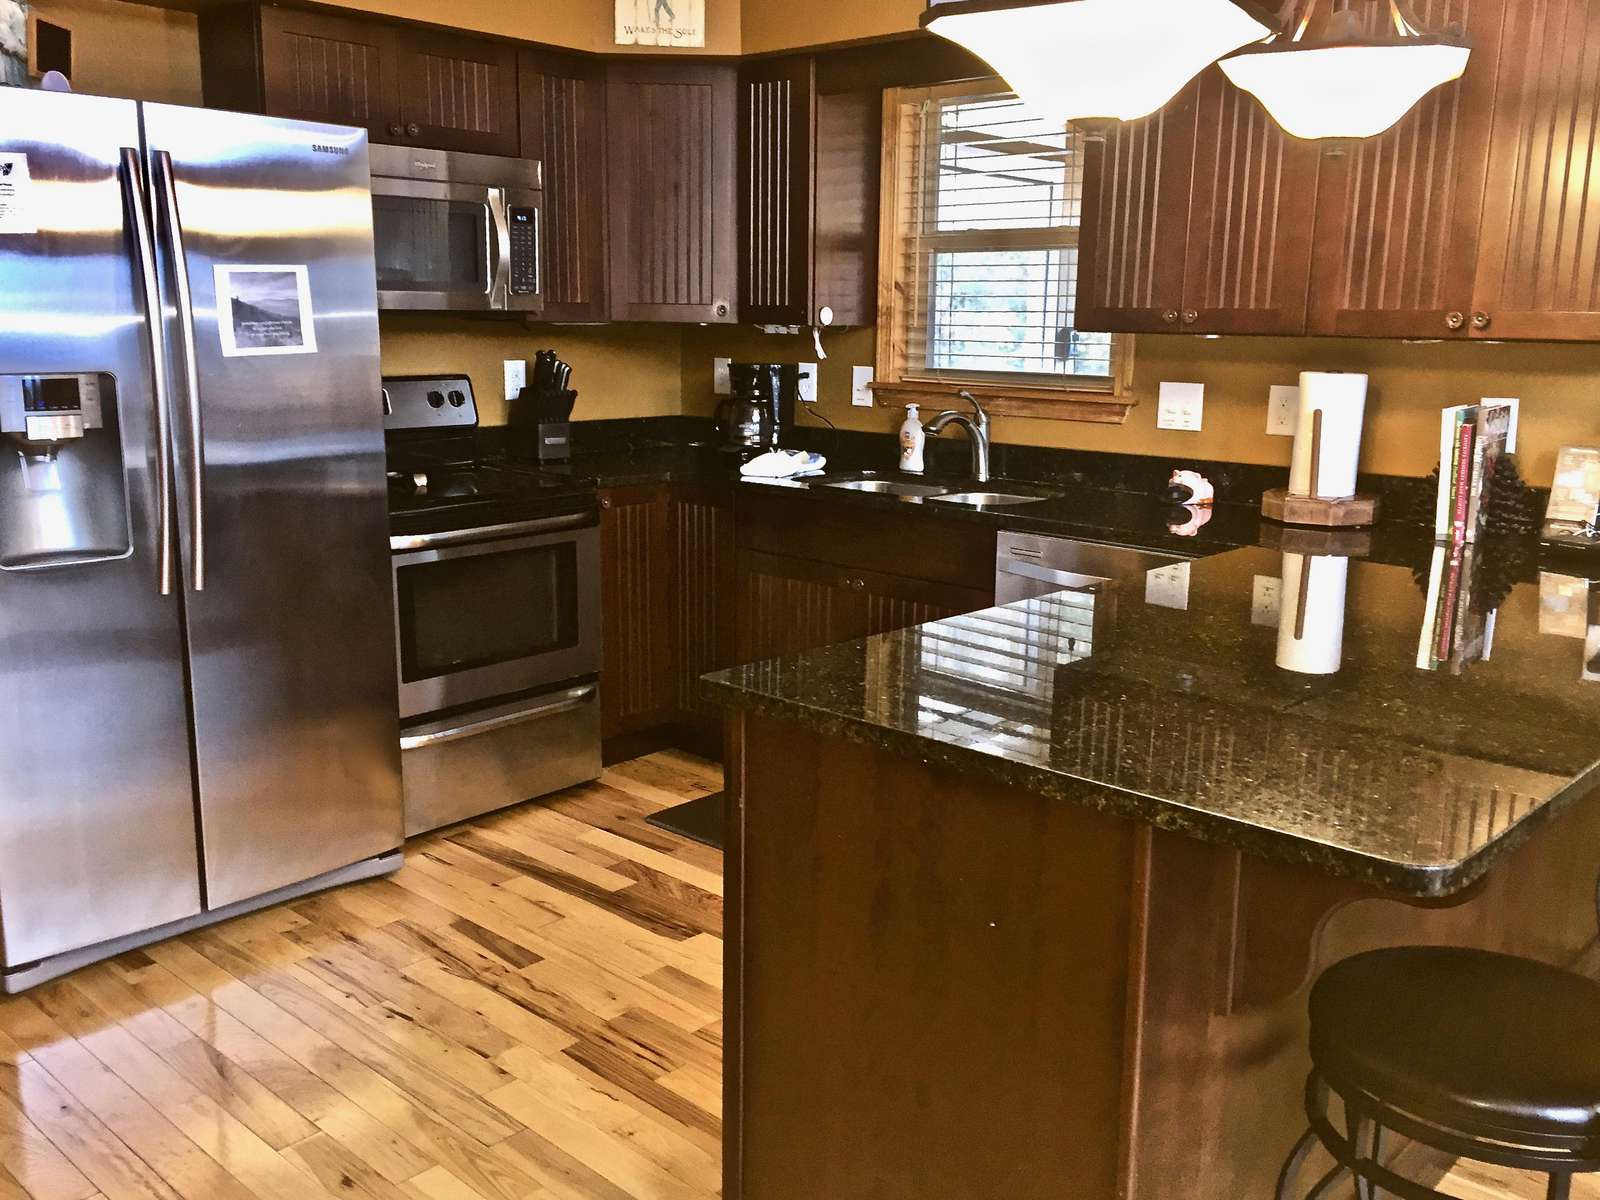 Kitchen is stocked and offers everything you will need to prepare and serve your meals